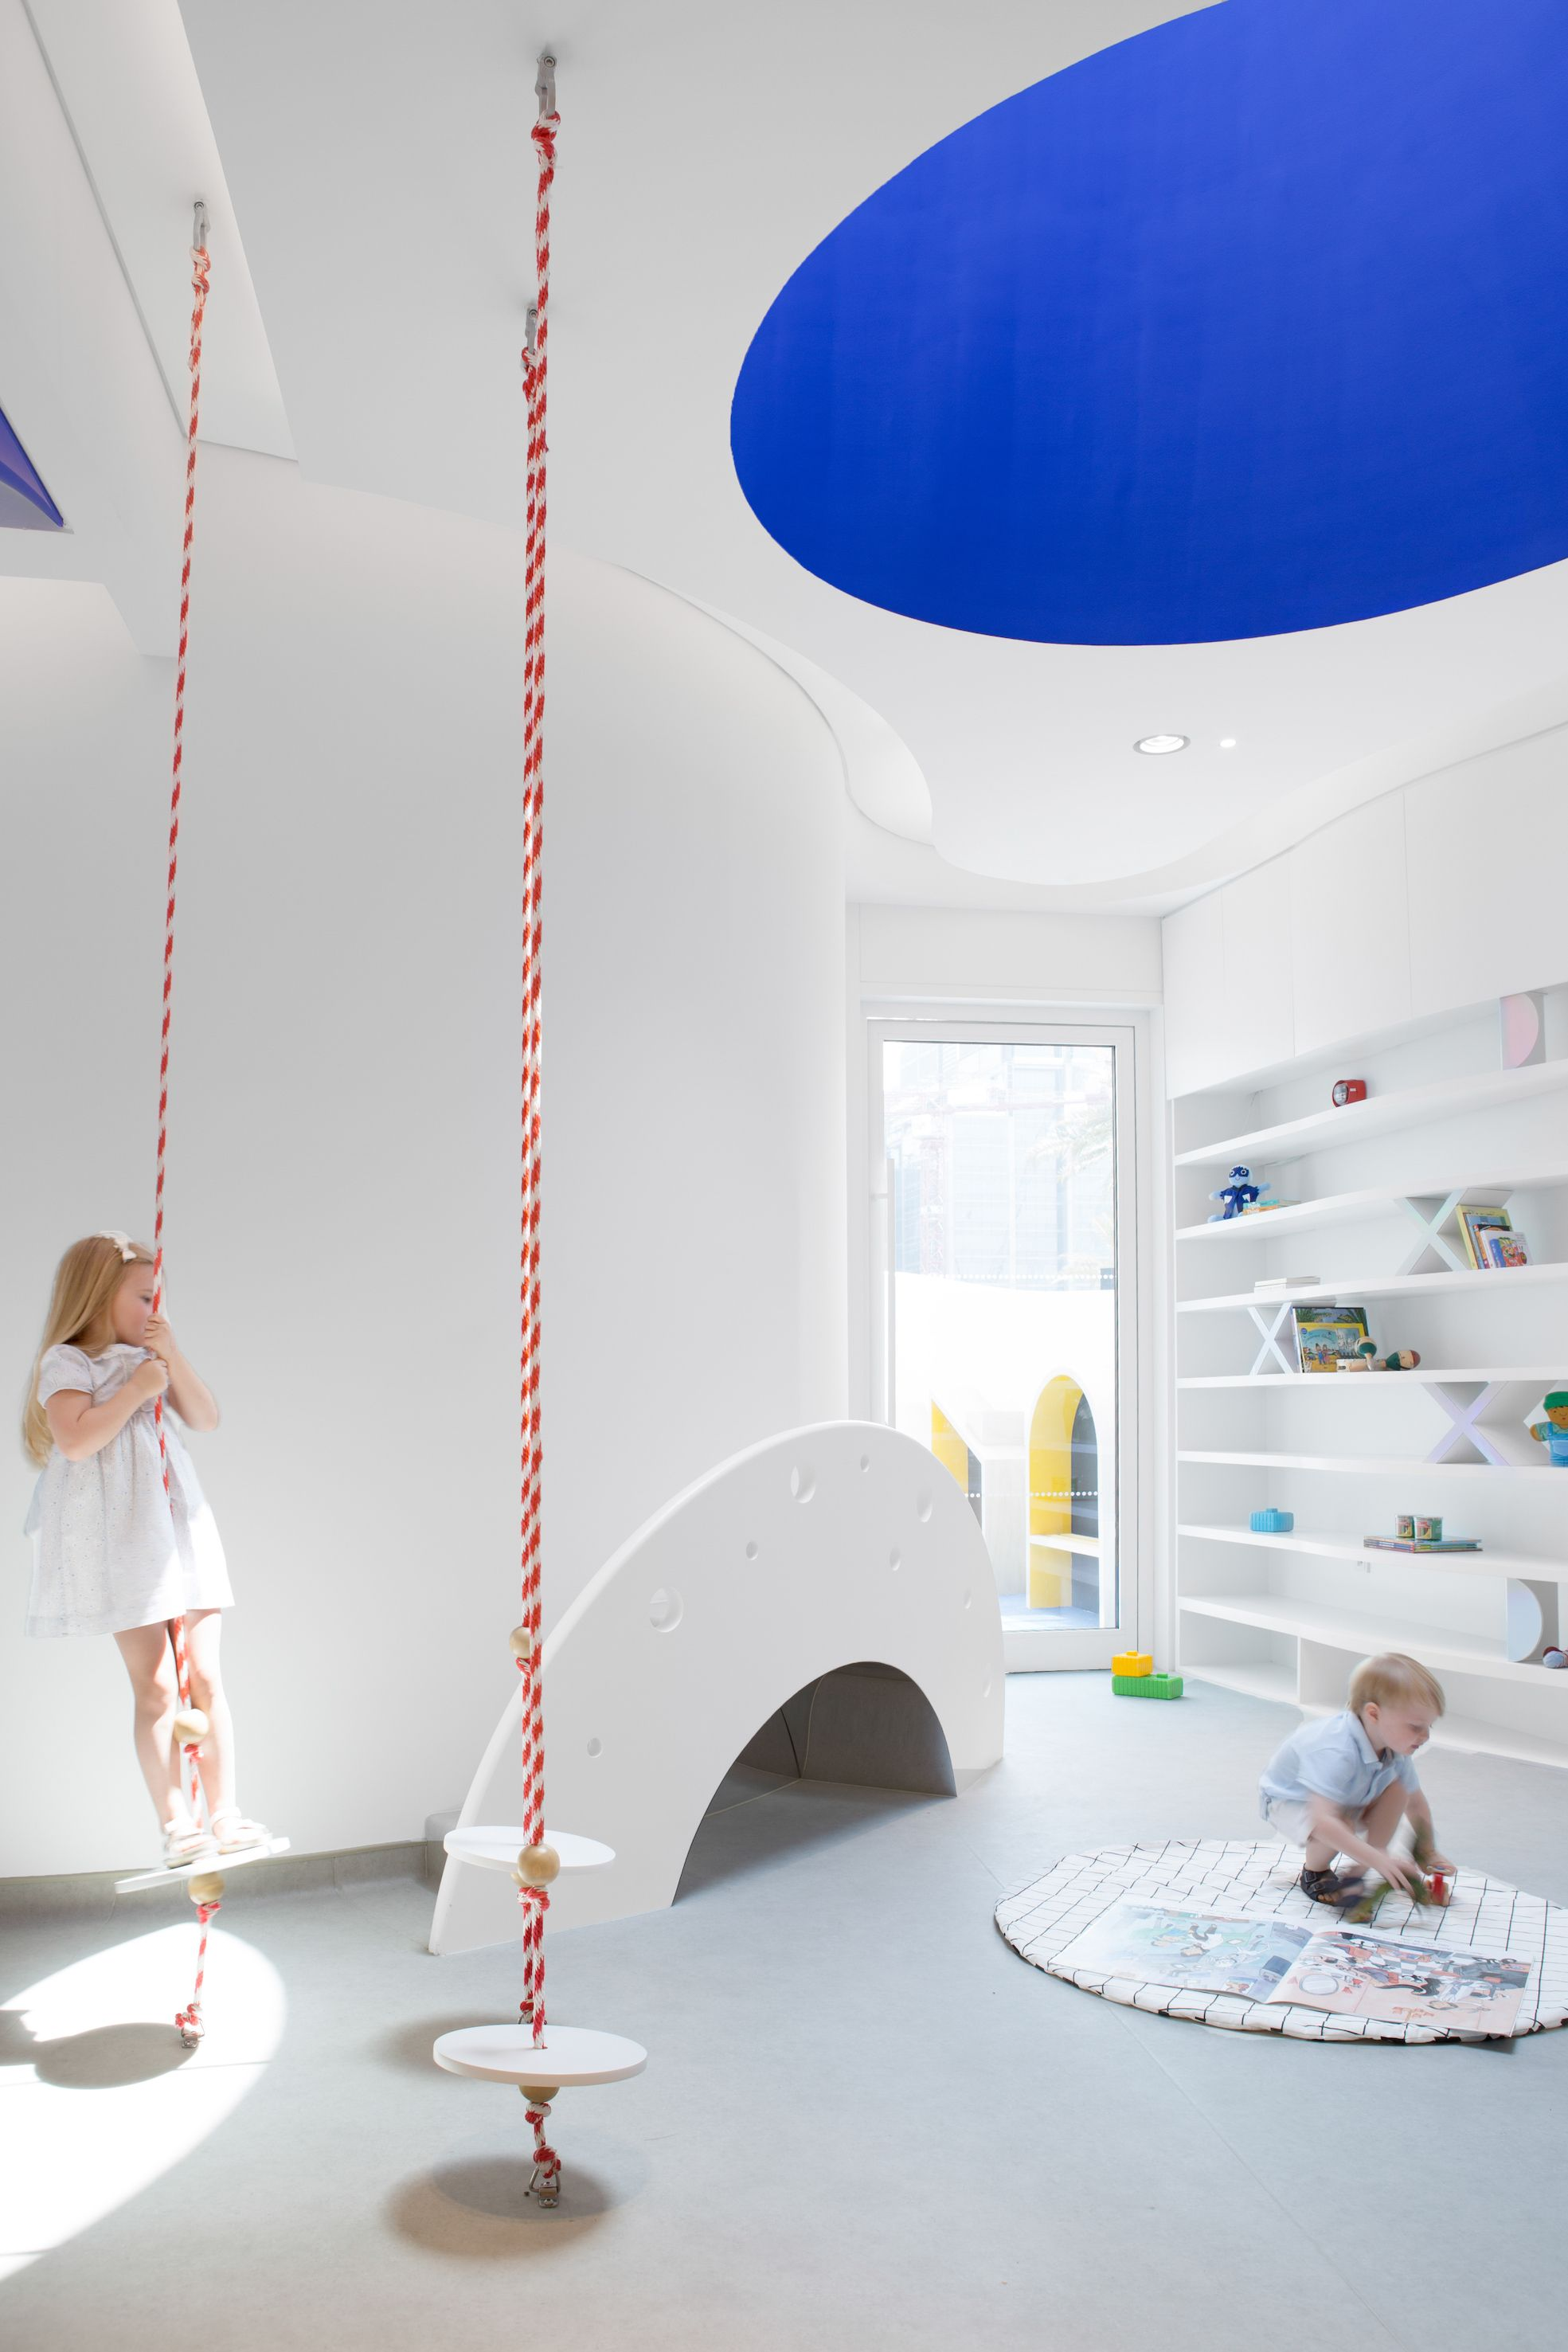 Roar-designed nursery in Dubai offers an outlook into the future of